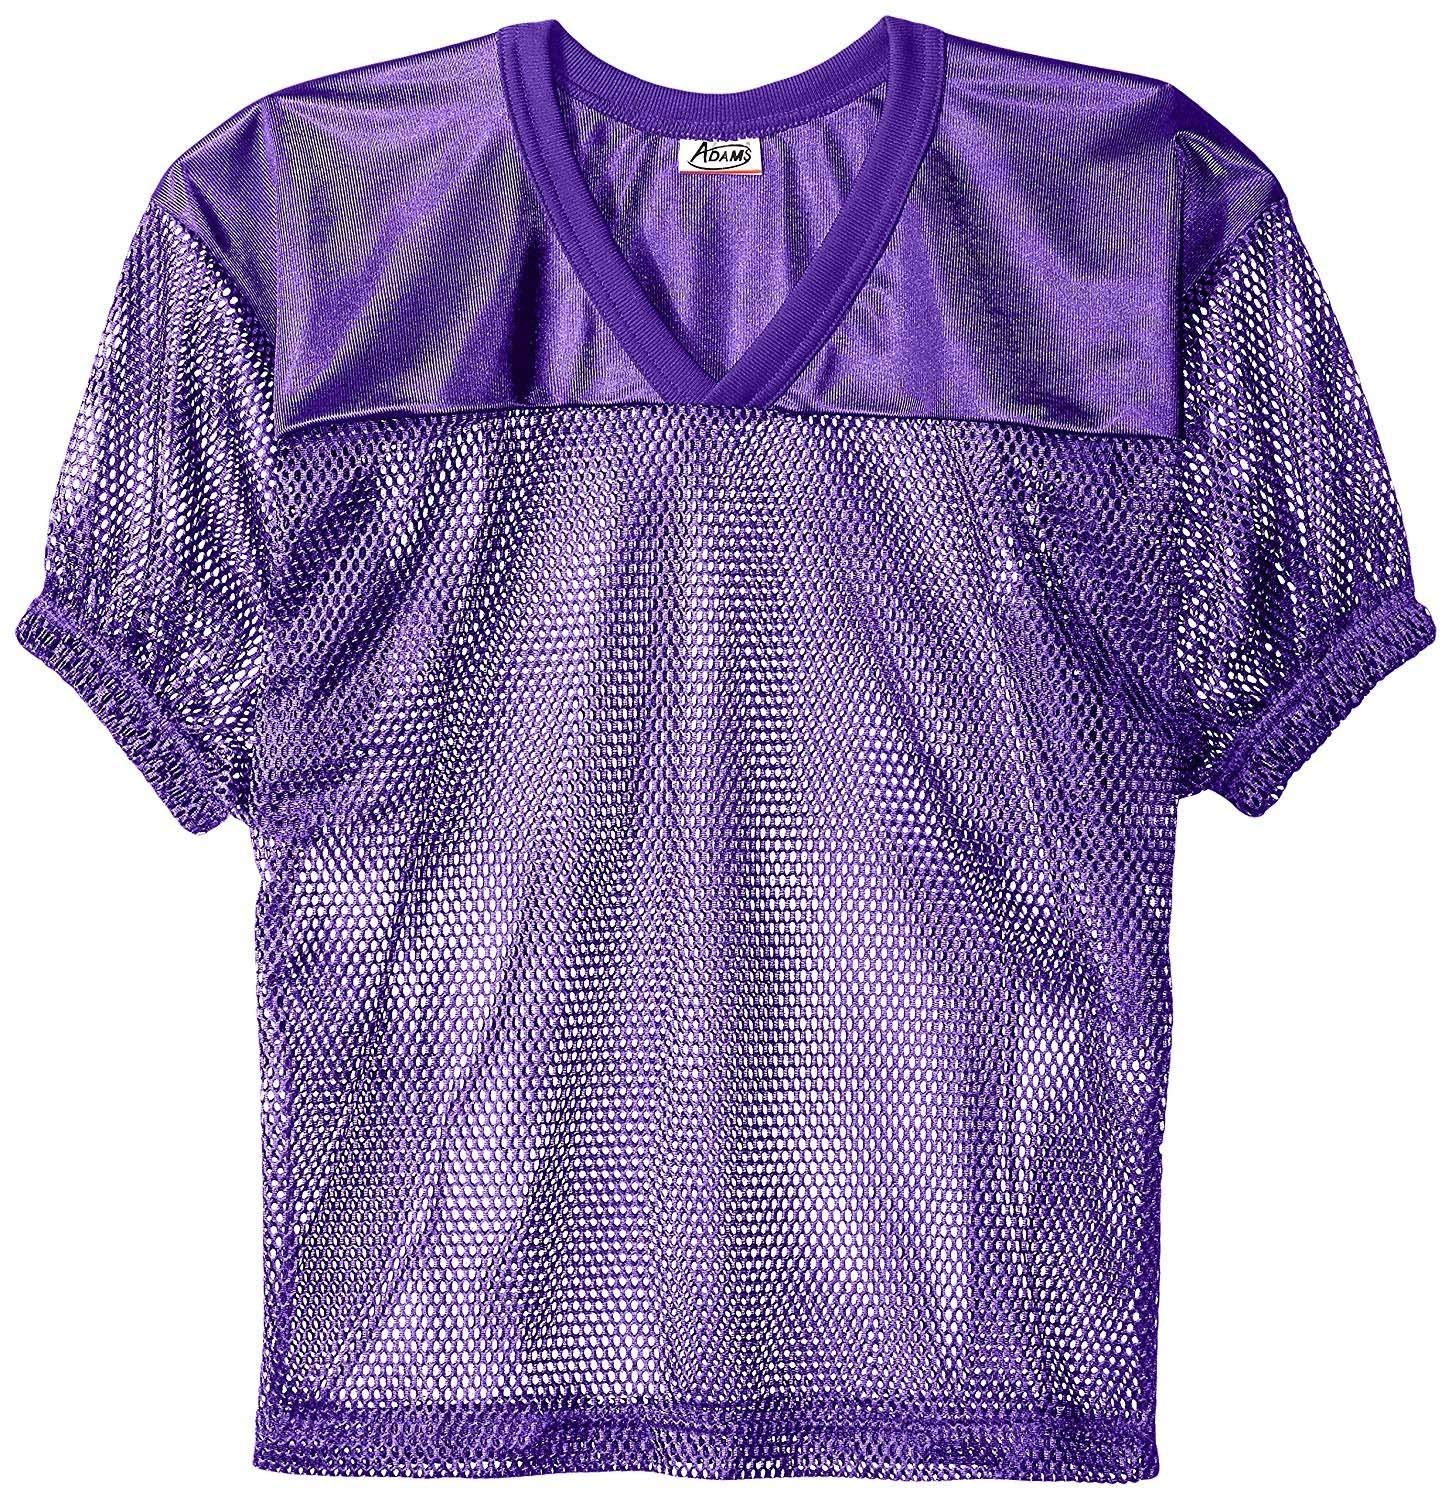 Adams USA FB Youth Jersey with Elastic Sleeve, Purple, L